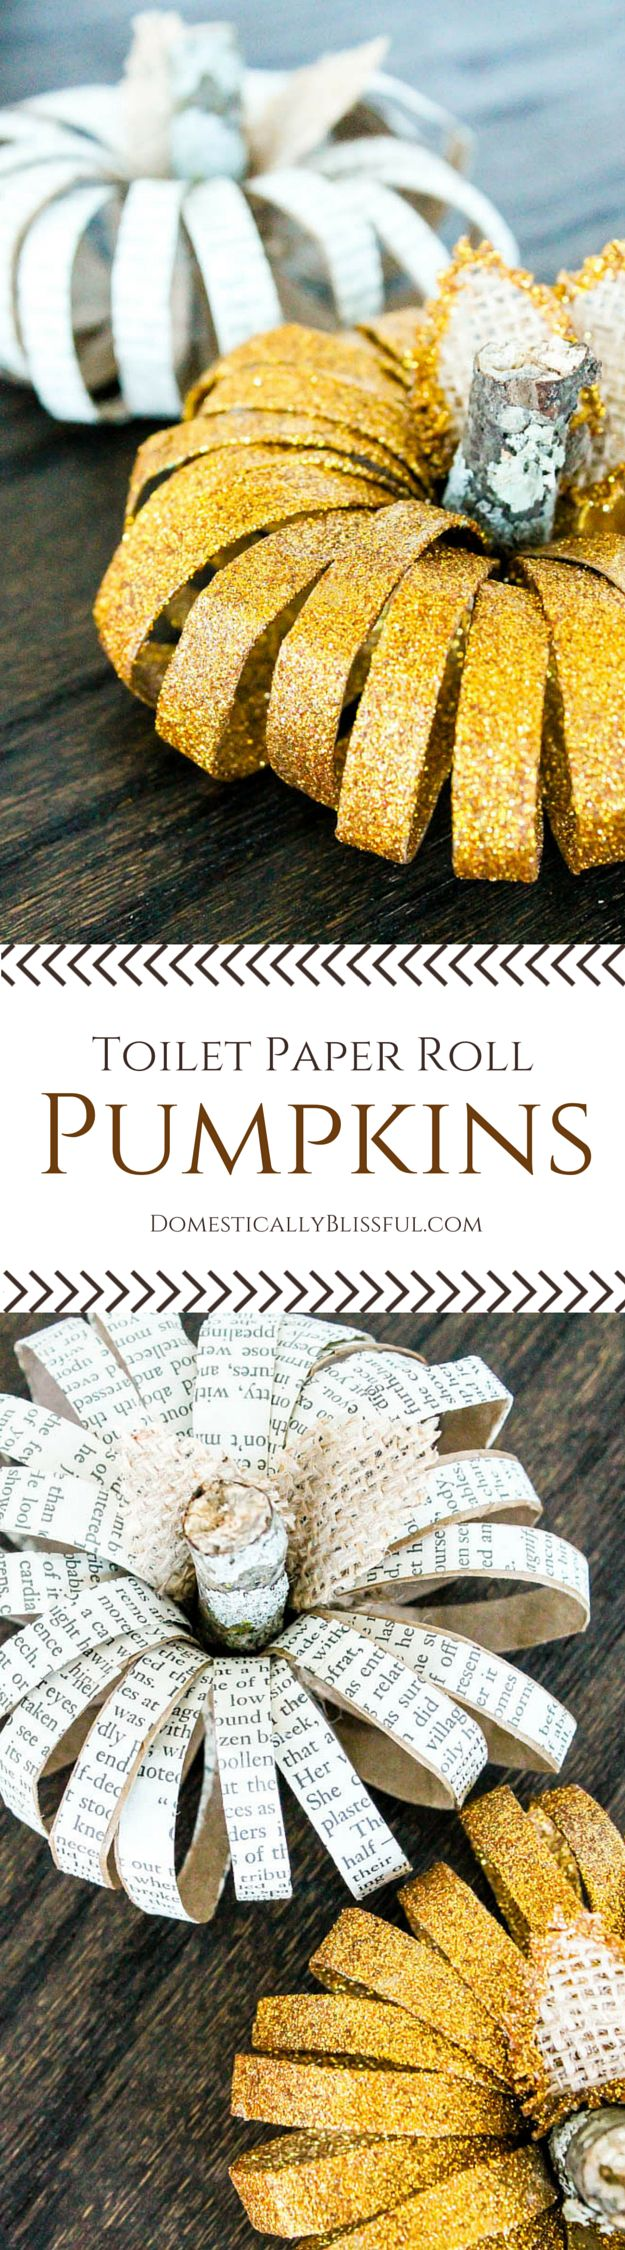 DIY Toilet Paper Roll Pumpkins | http://domesticallyblissful.com/diy-toilet-paper-roll-pumpkins/